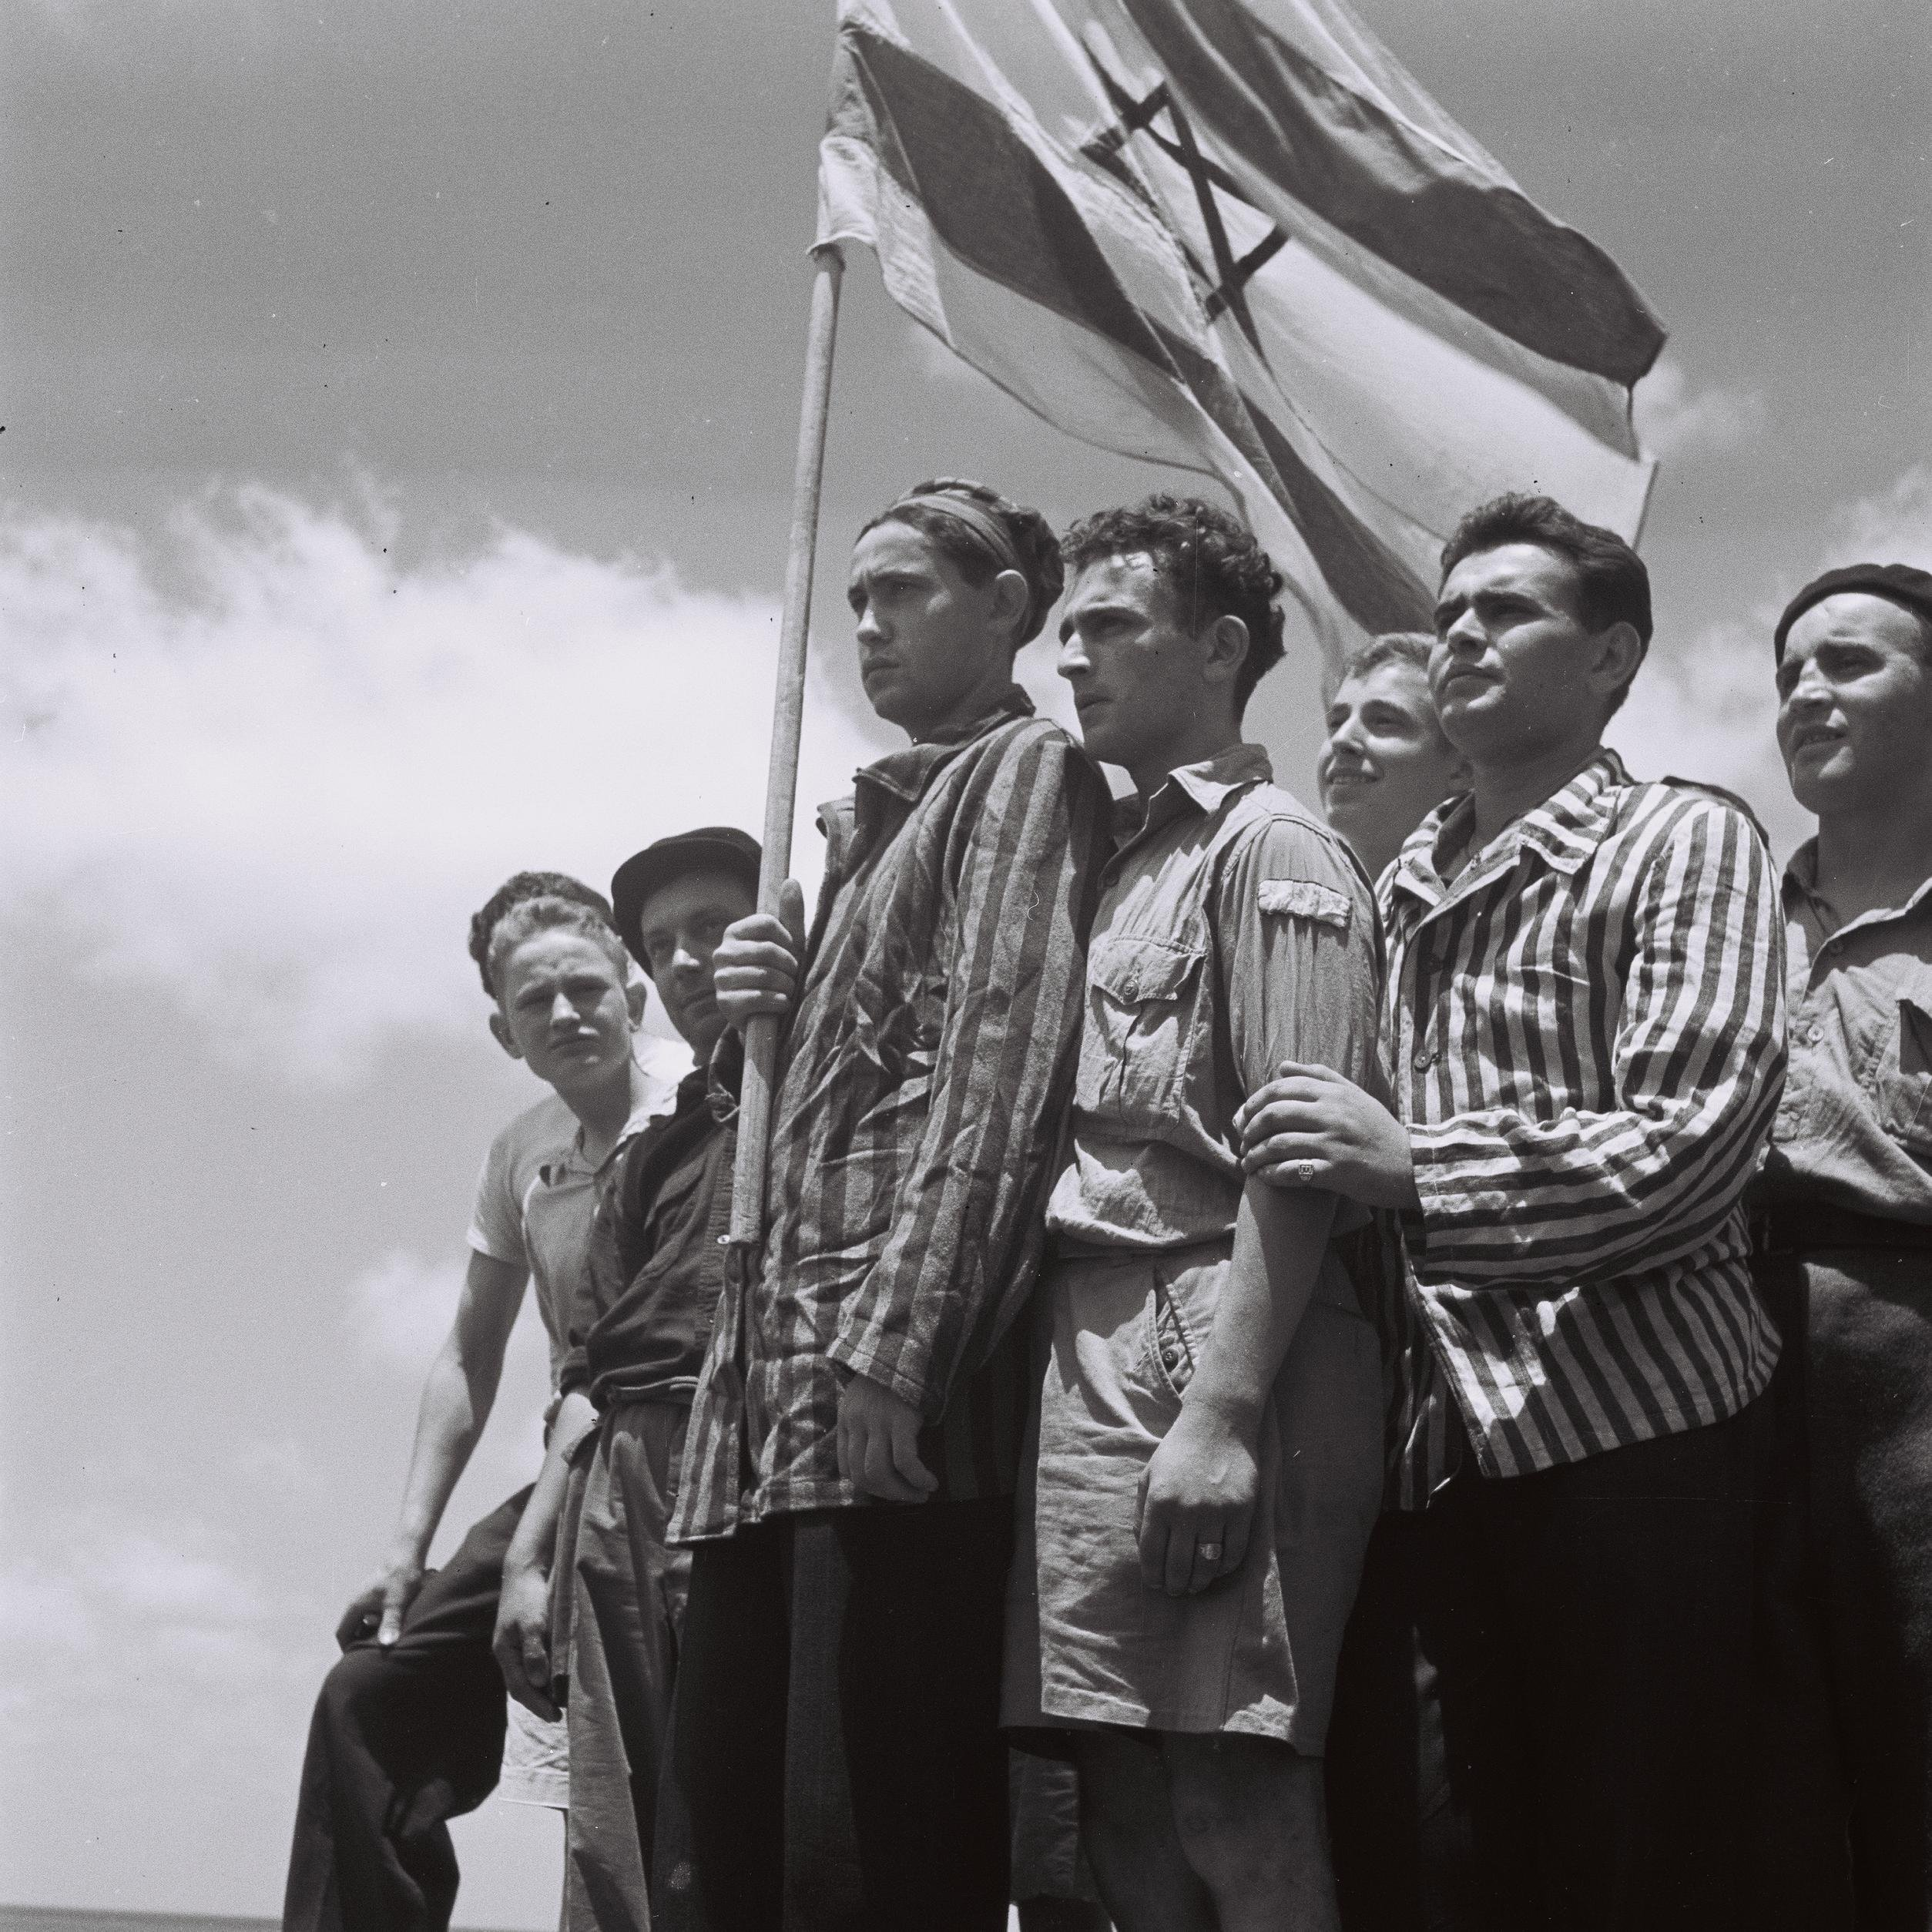 Buchenwald survivors arrive in Haifa